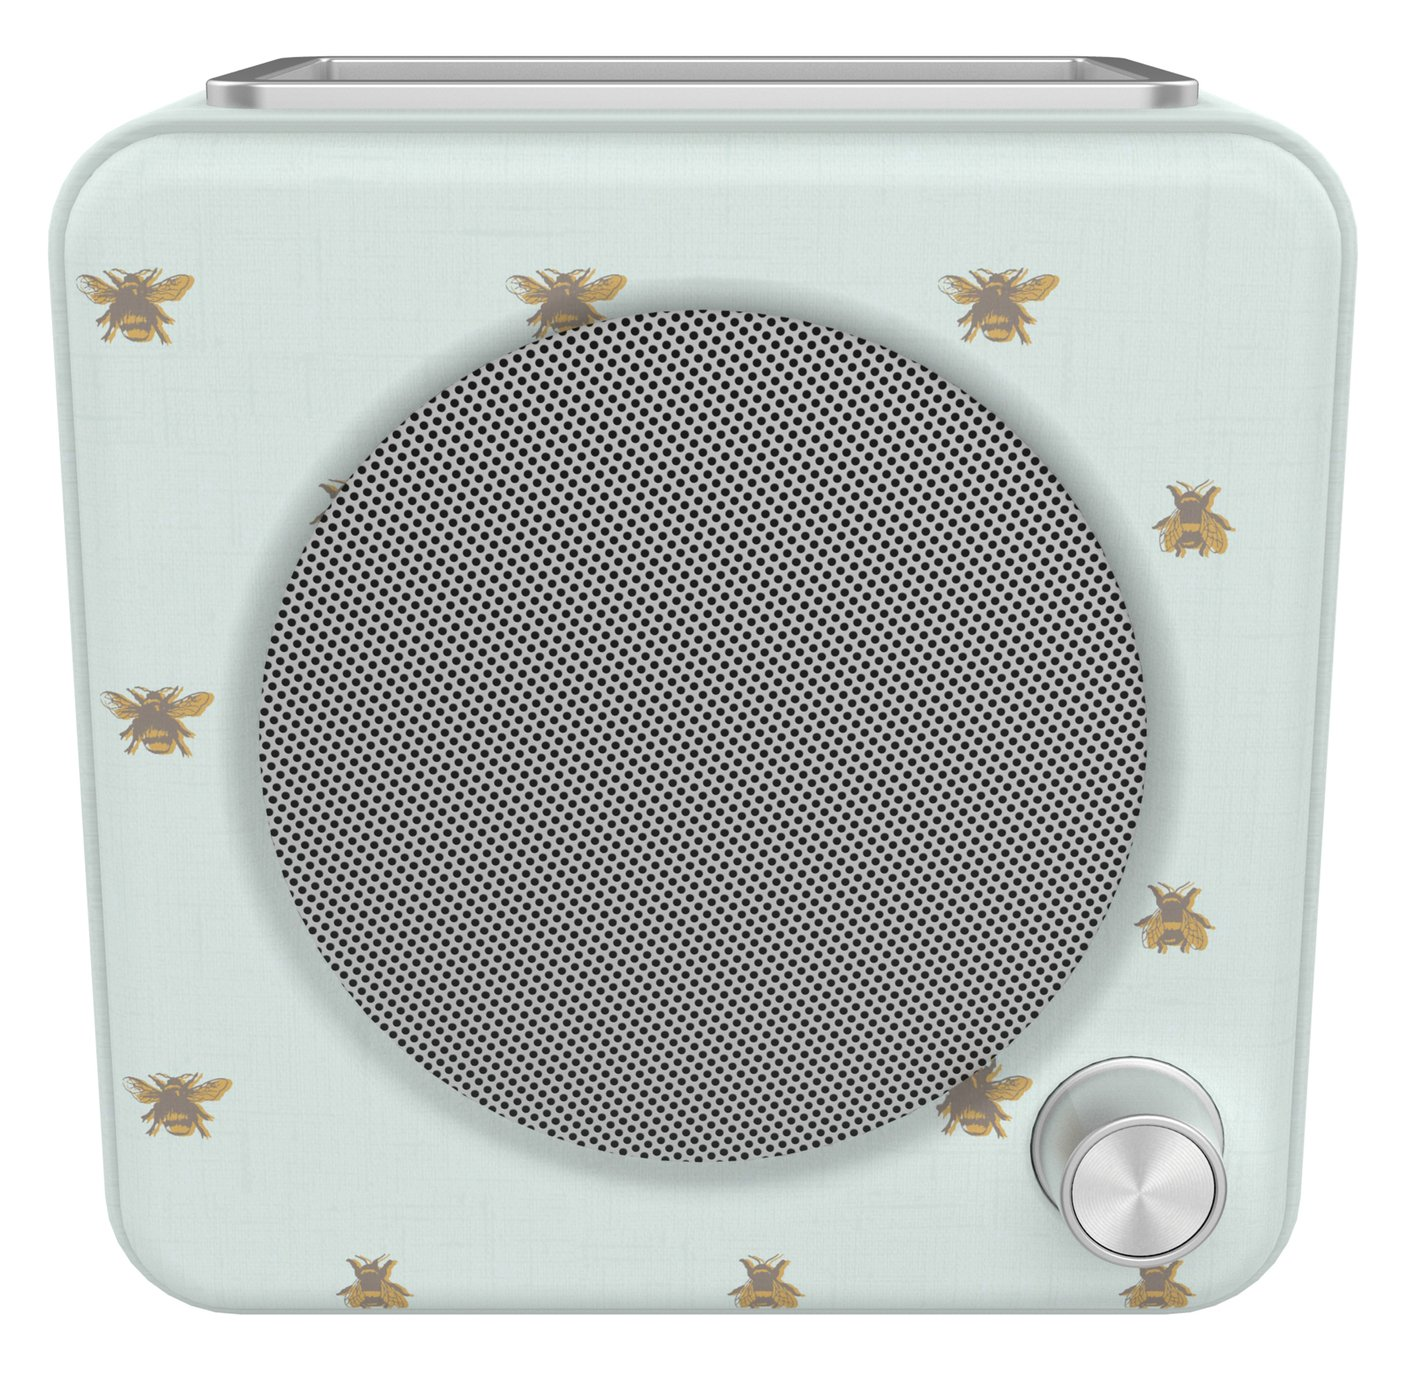 Bush Classic Mini DAB Radio - Bee Pattern